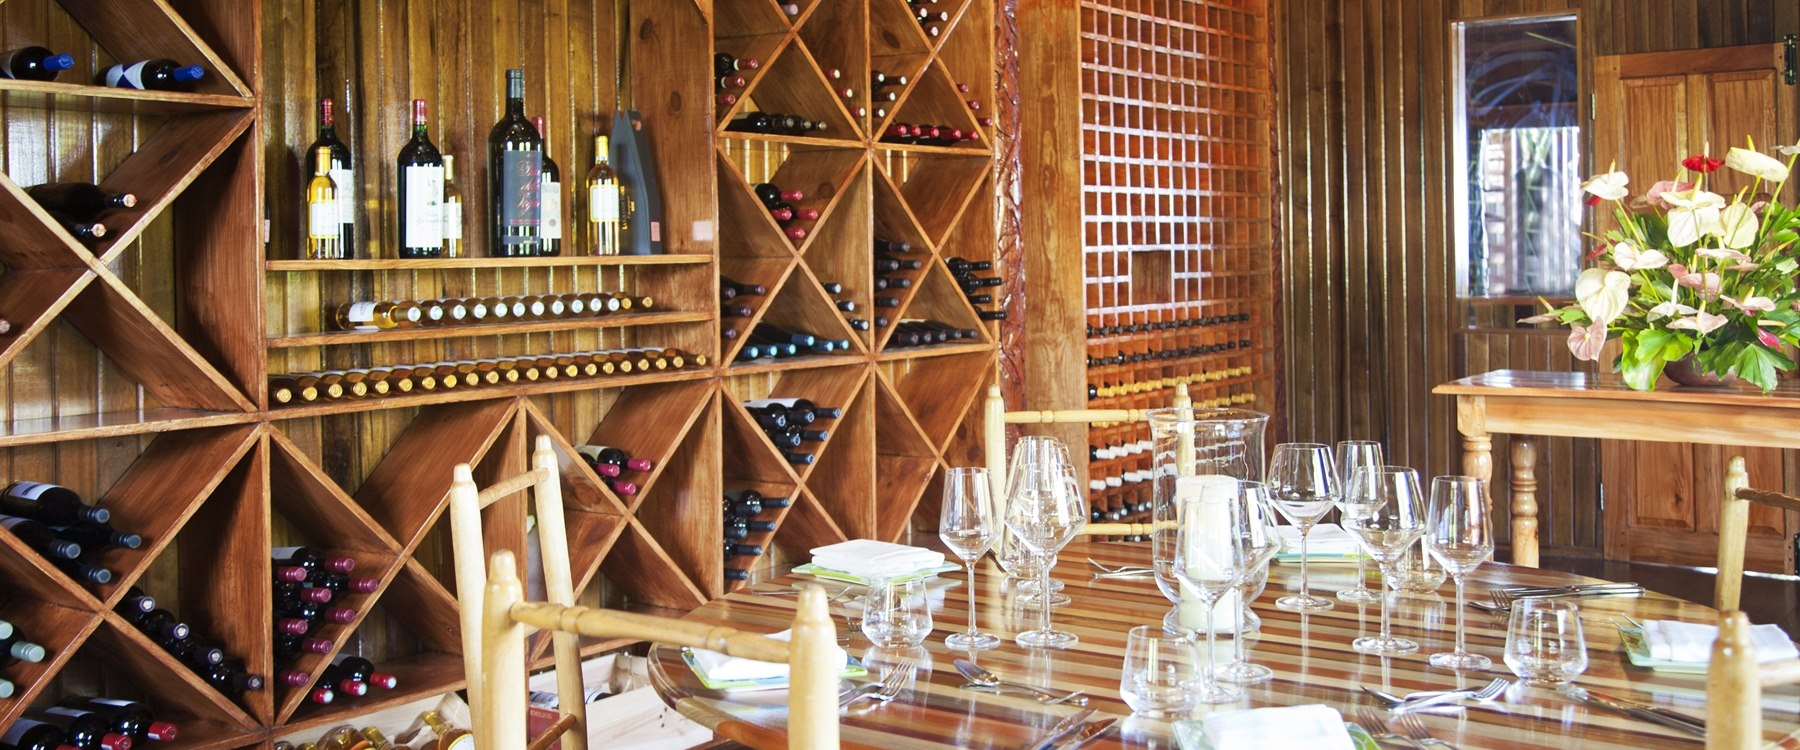 Wine Room at Ladera, St Lucia